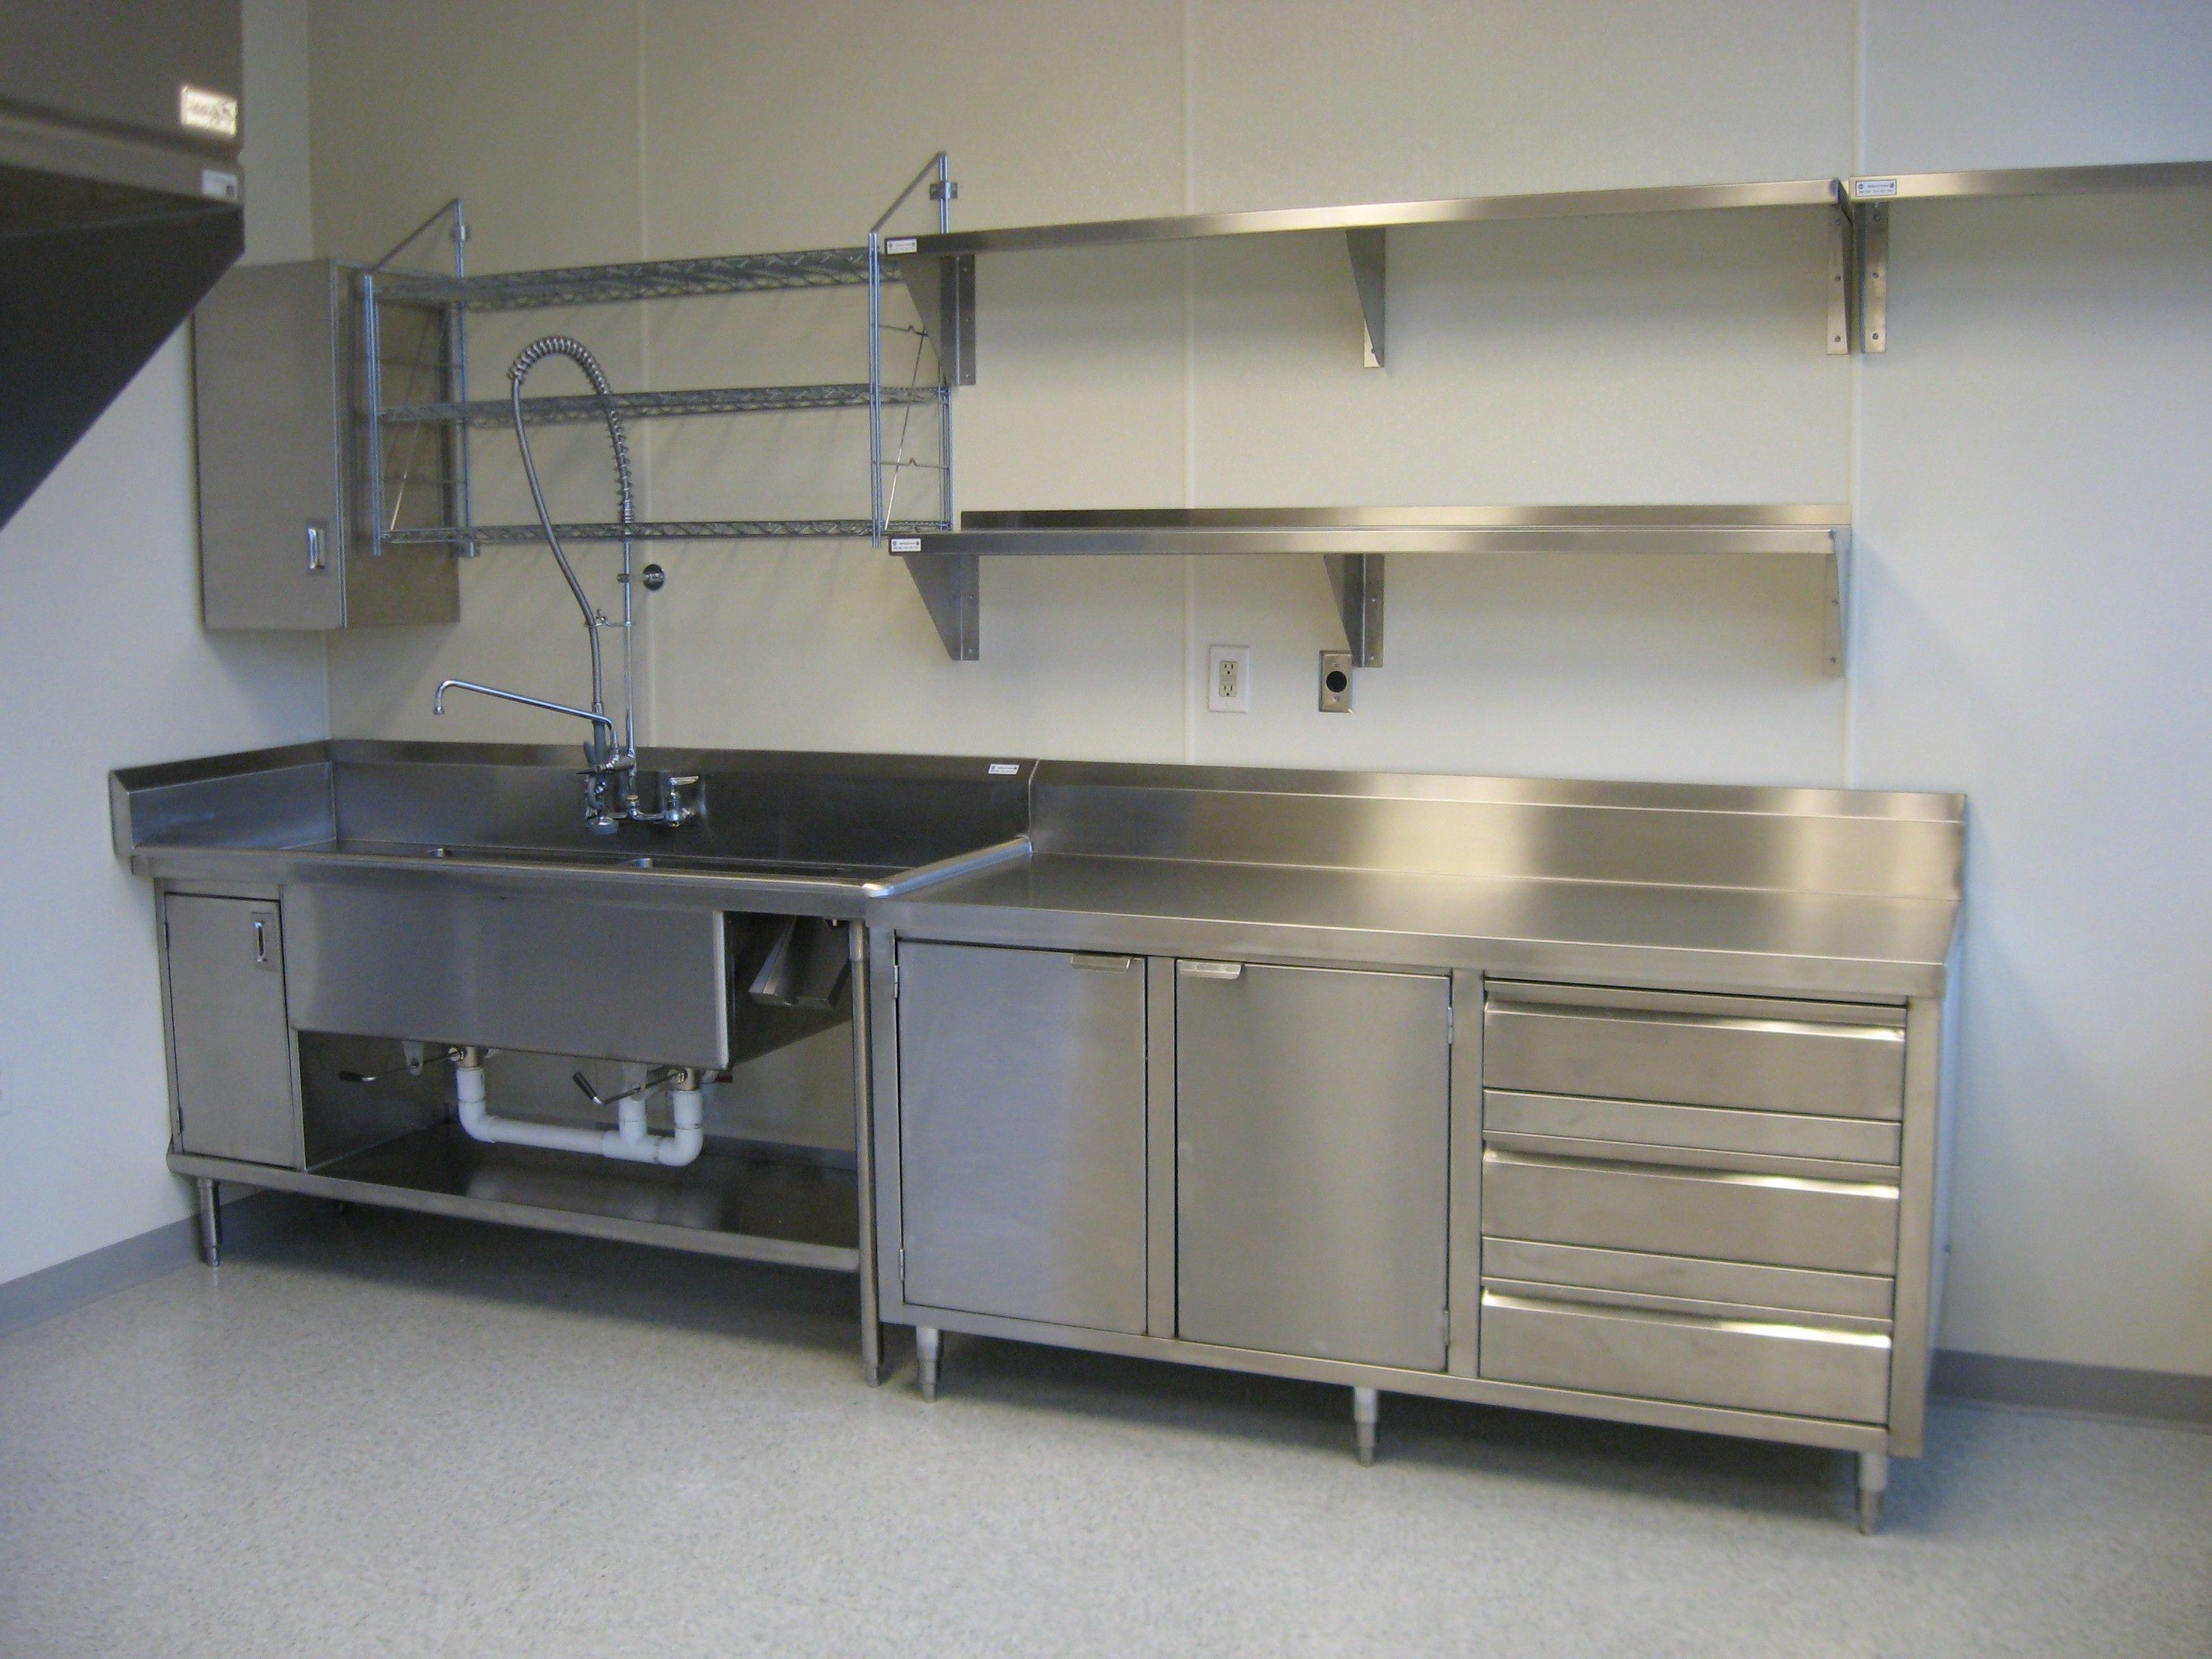 Restaurant Kitchen Metal Shelves shelving stainless steel fitted units commercial kitchen large